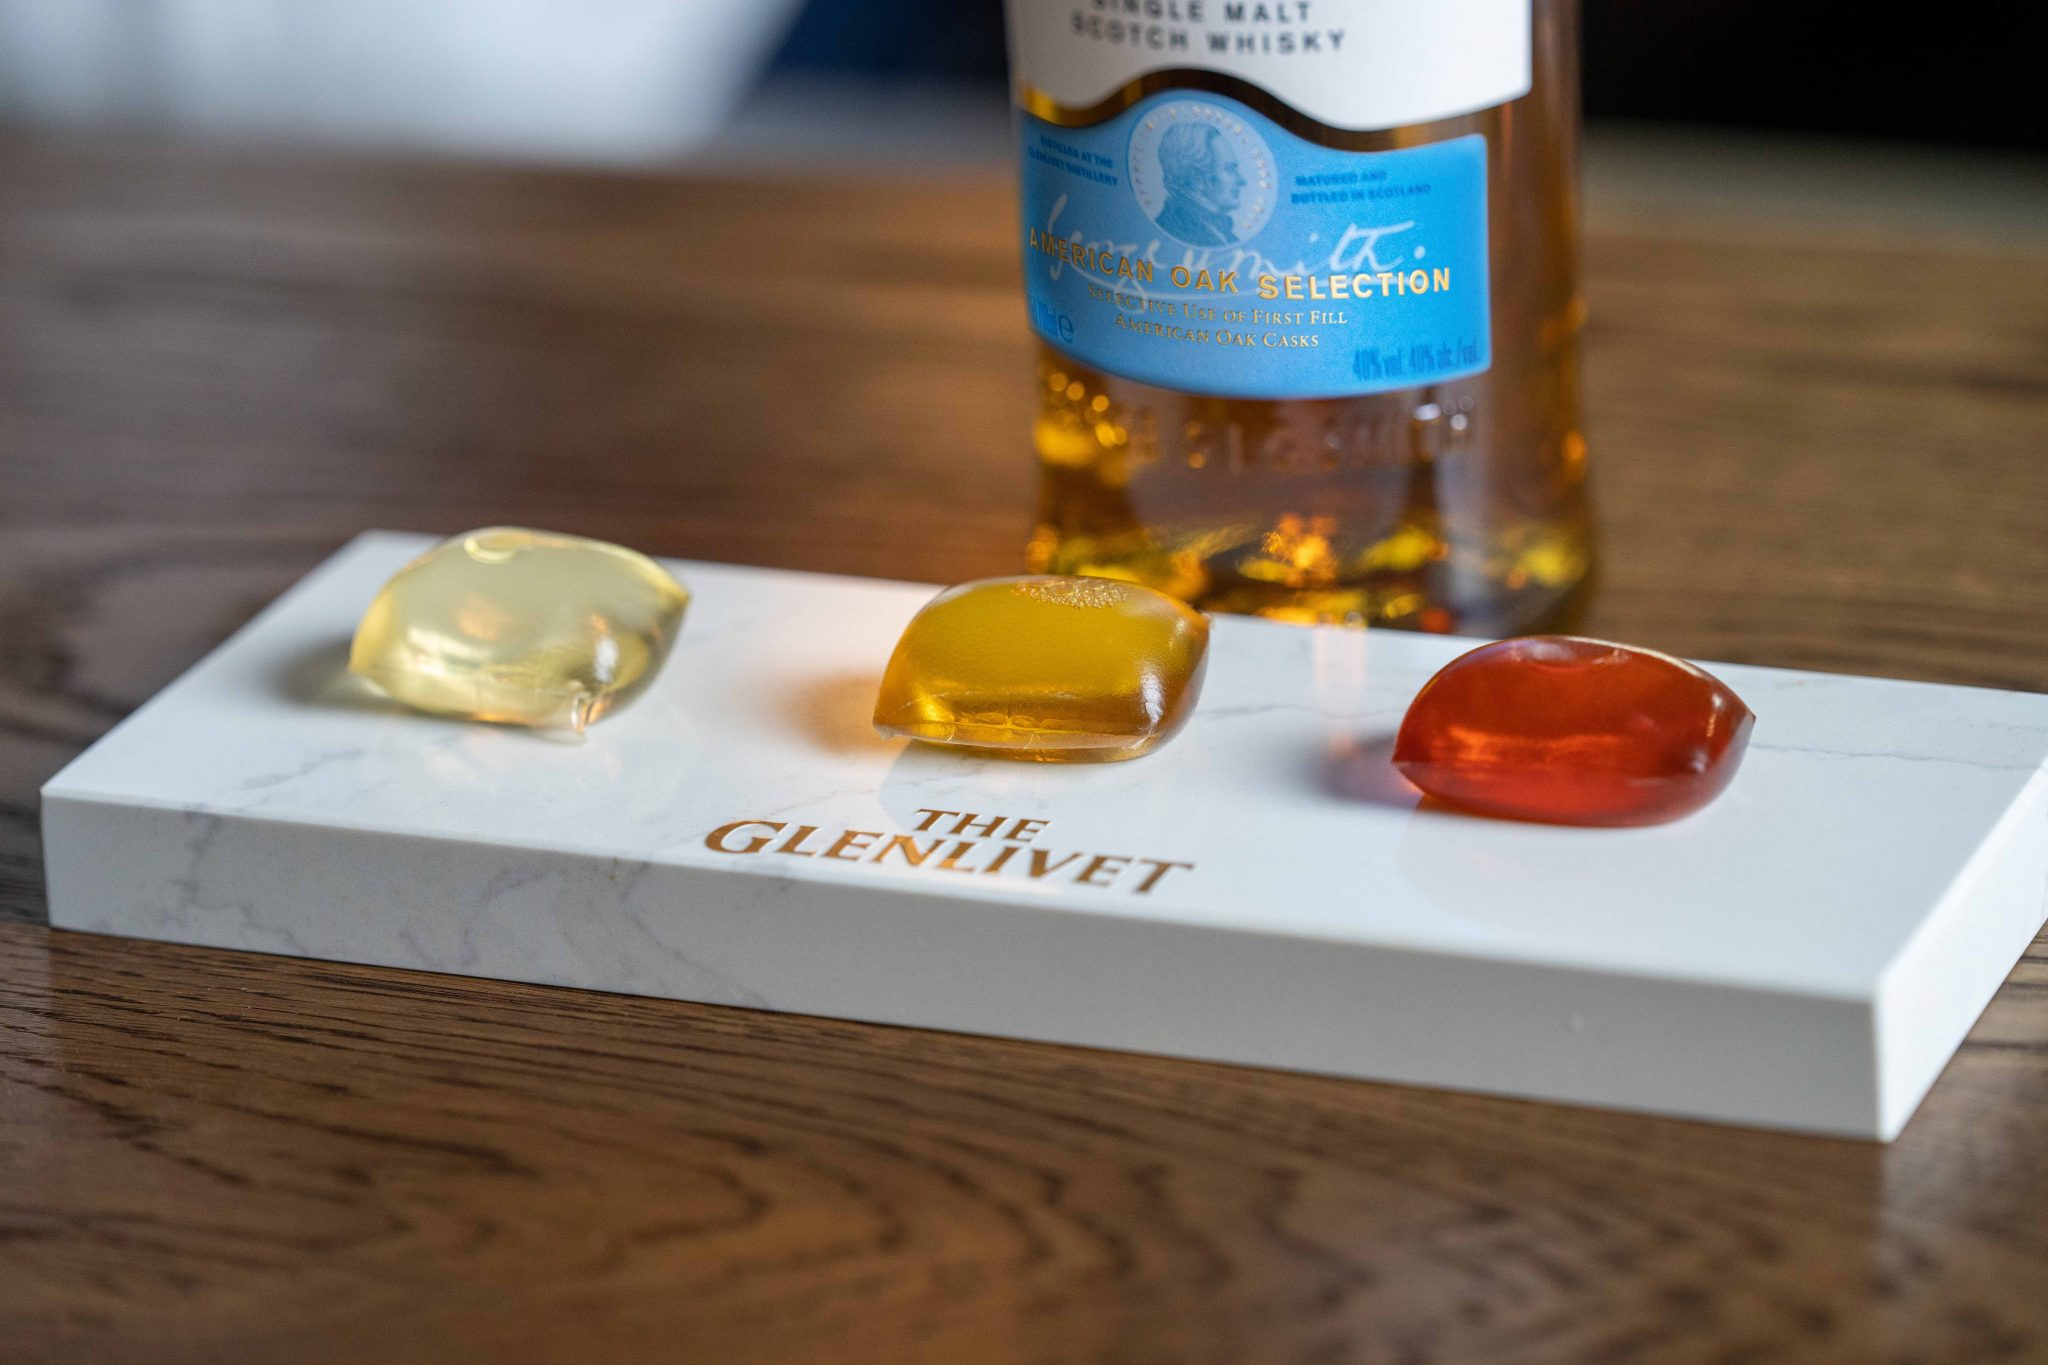 The Glenlivet Capsule Collection 2